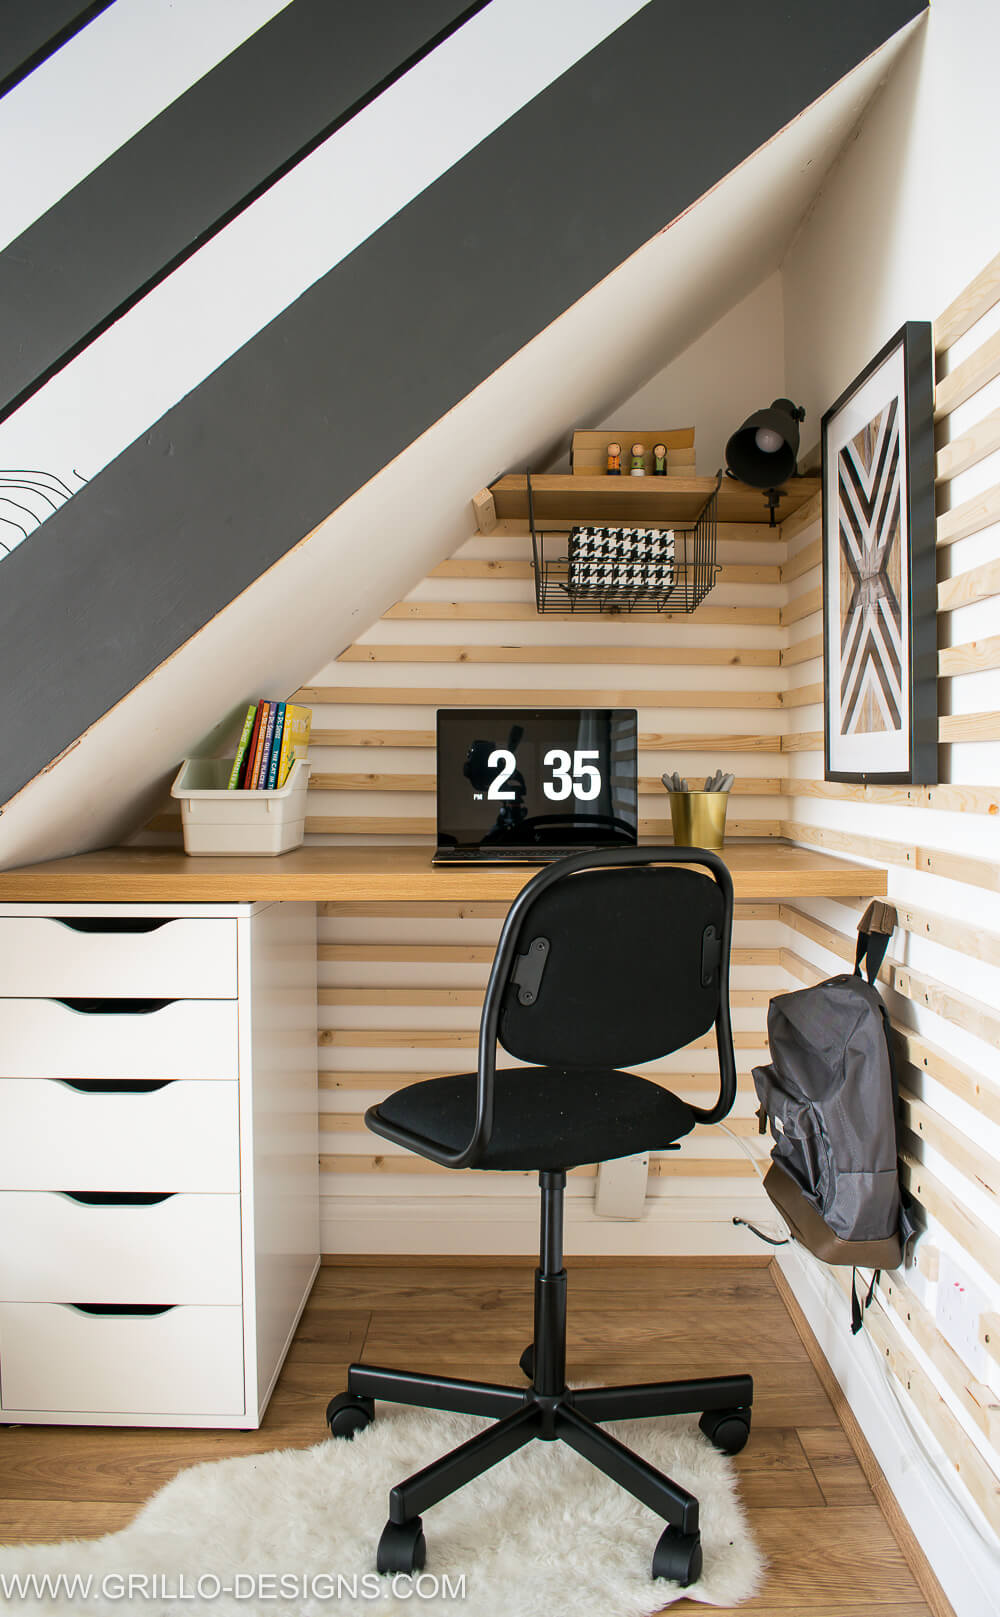 Make a diy under stairs homework station with ikea furniture / grillo designs